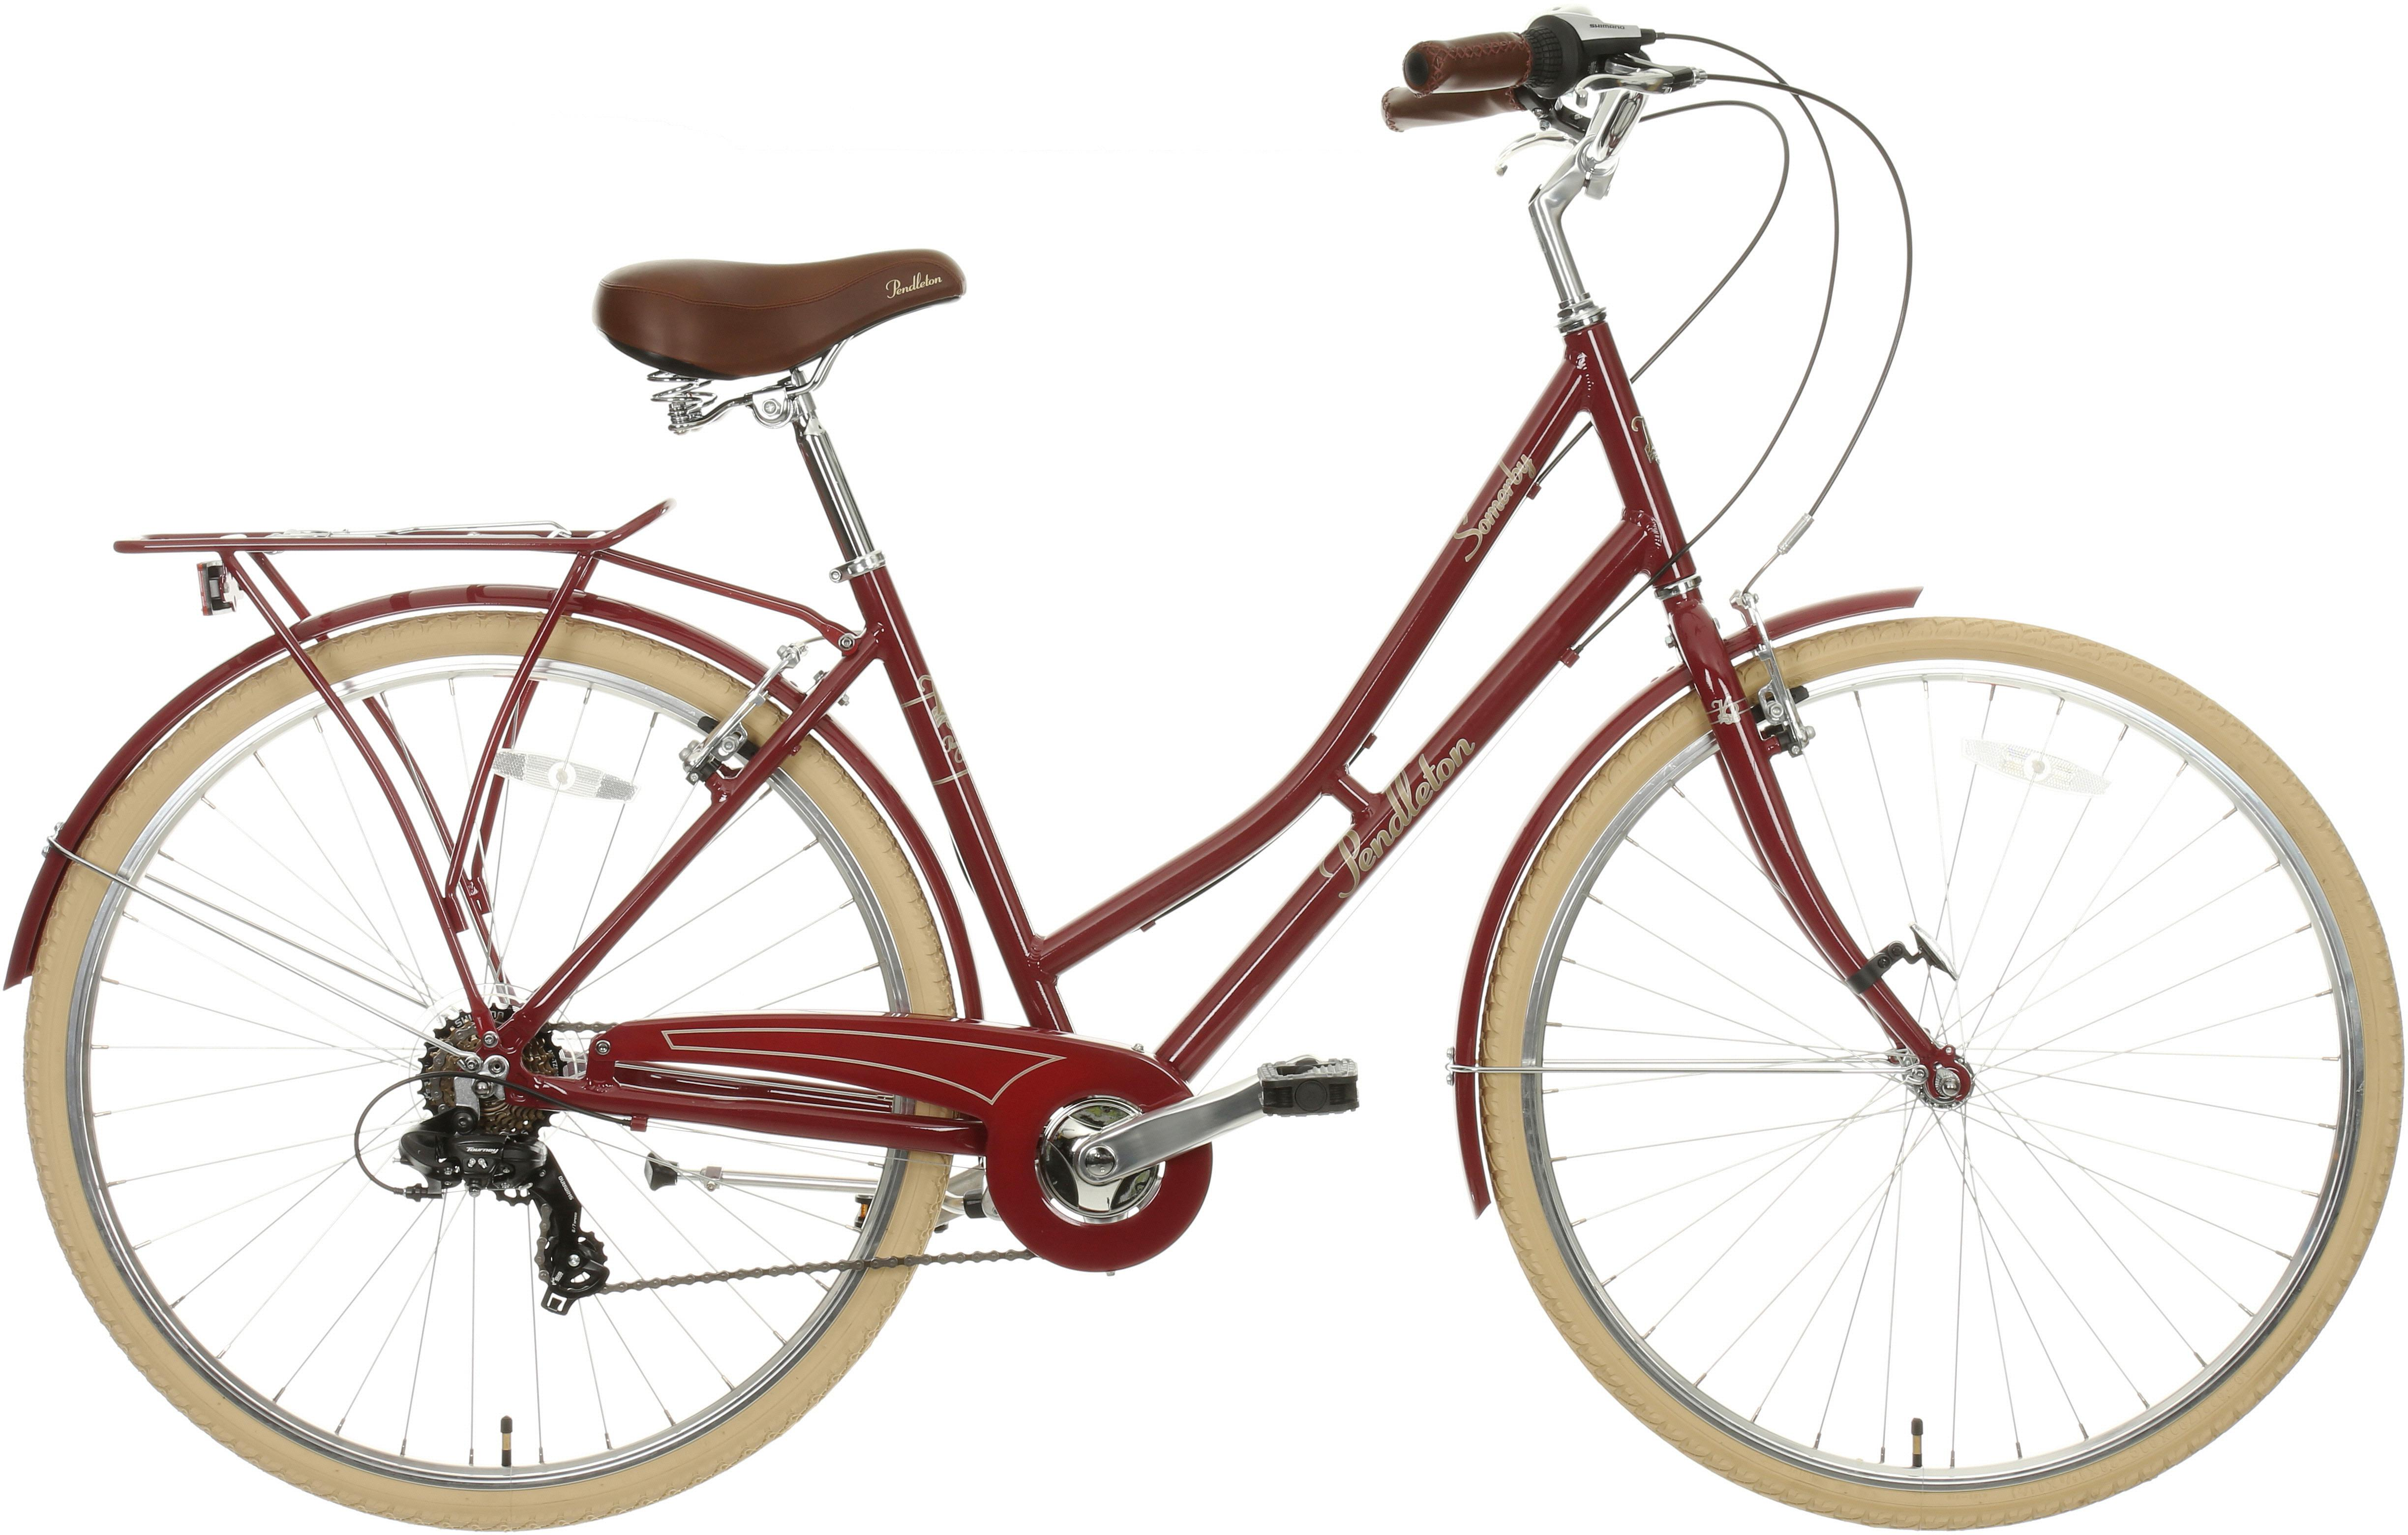 Pendleton Somerby Hybrid Bike - Maroon Red 17 inch